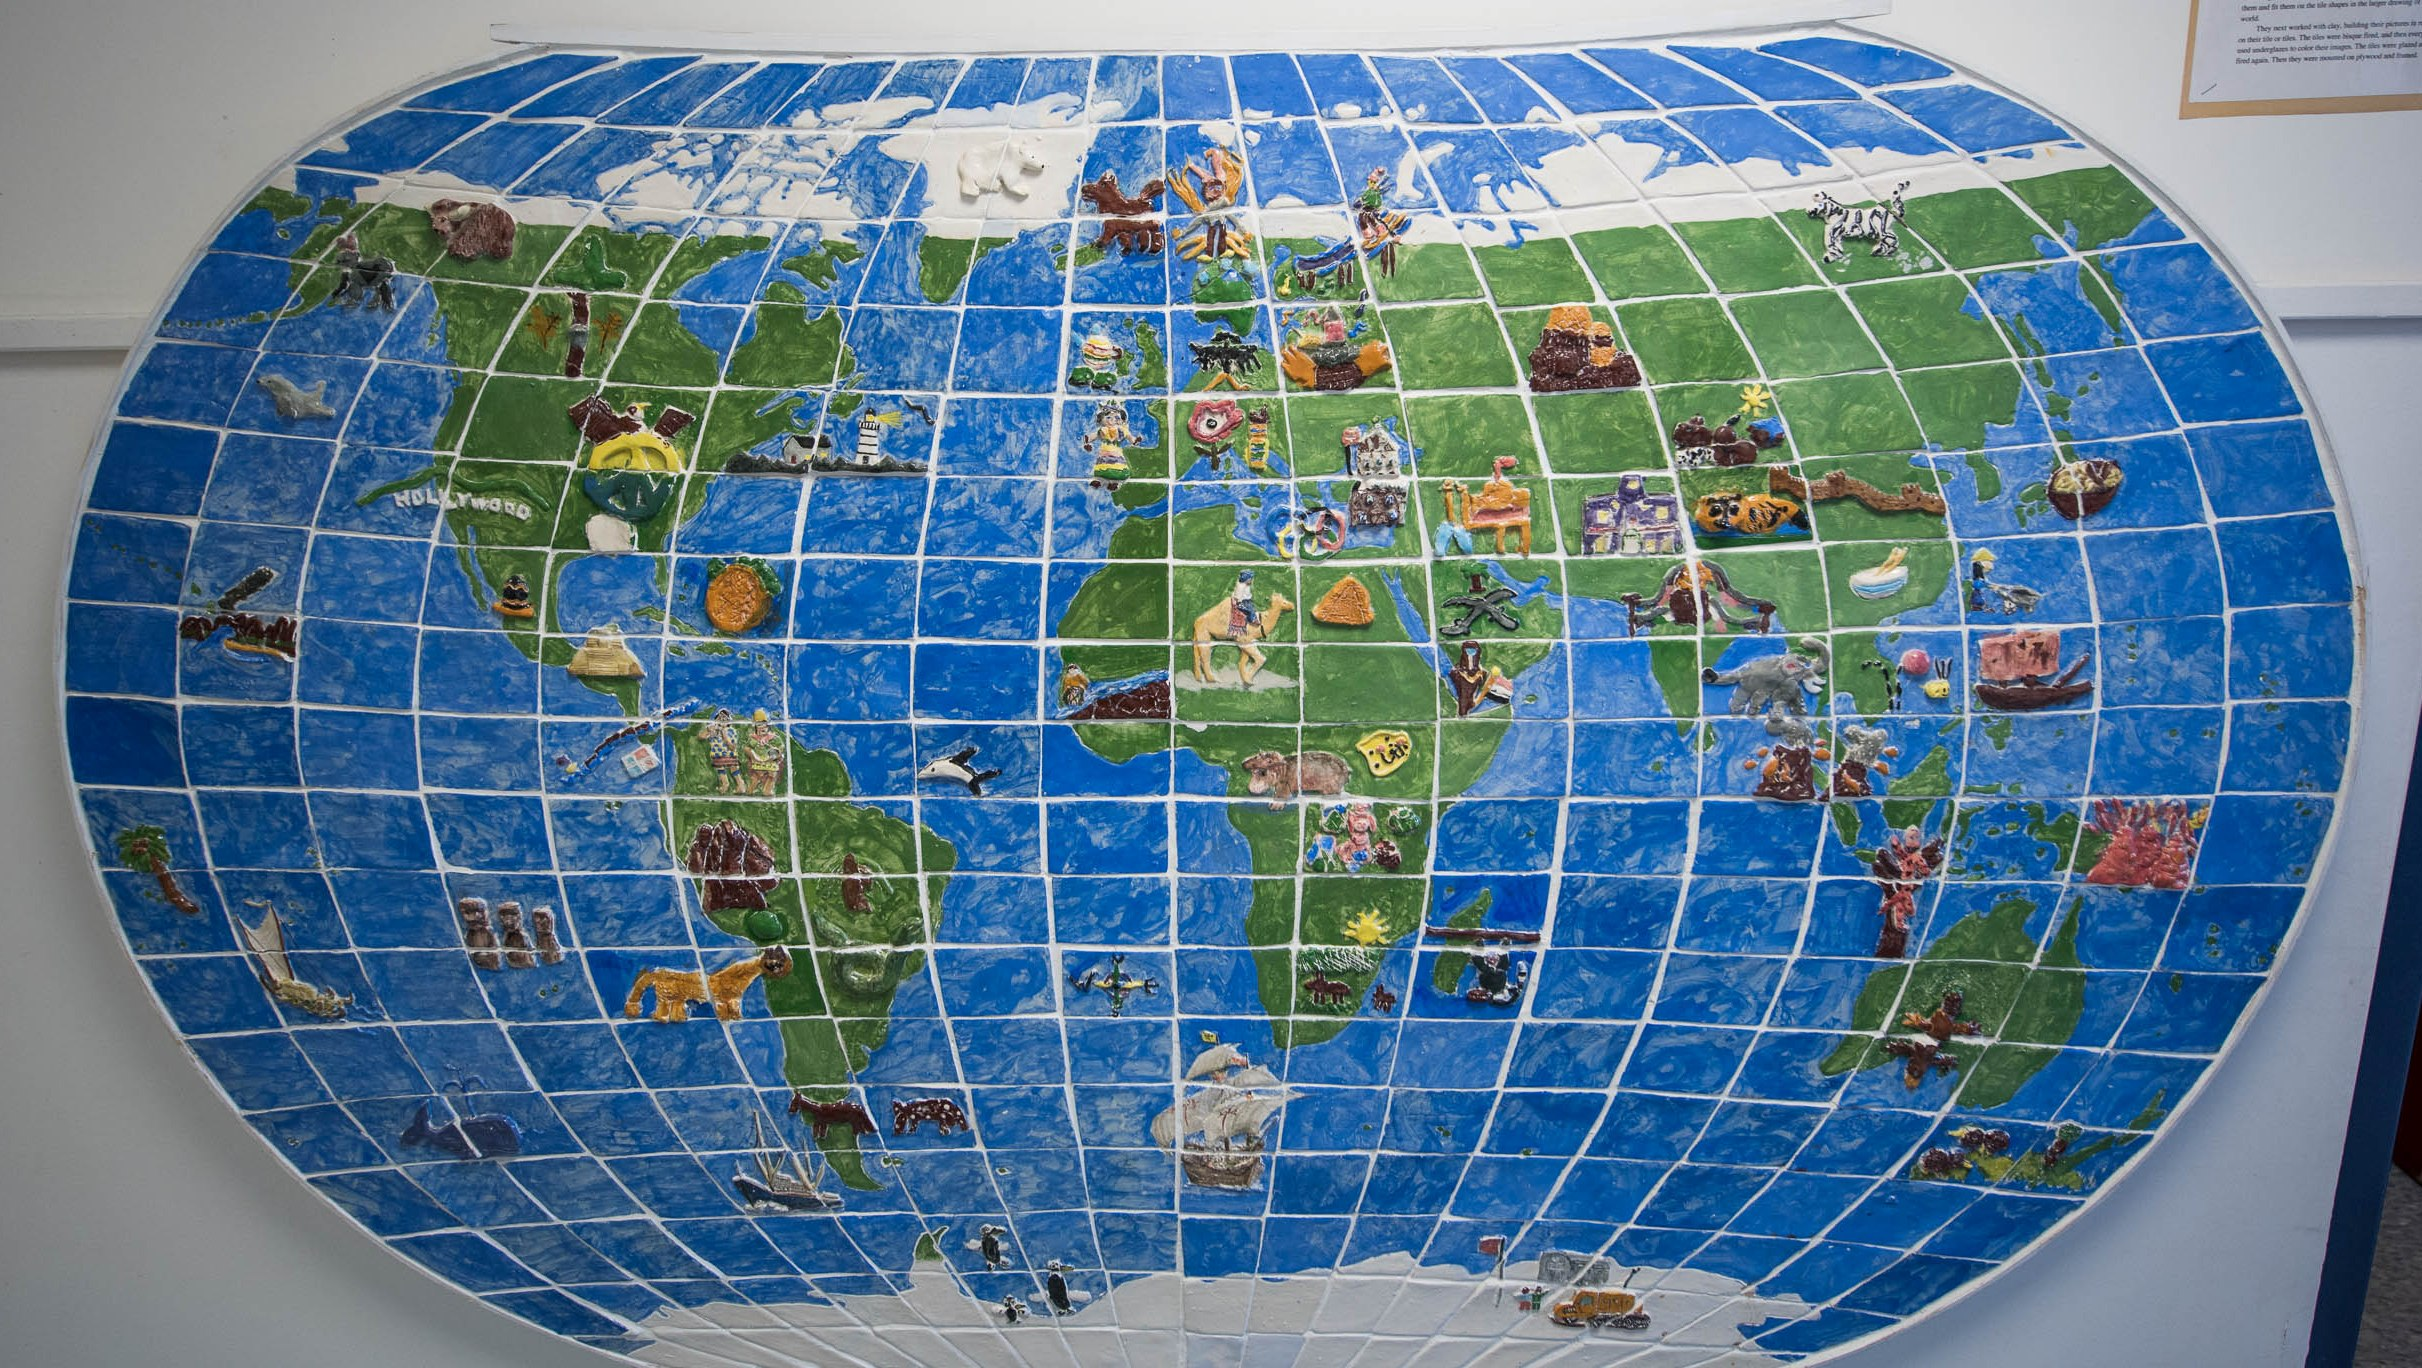 image of ceramic map of world on wall